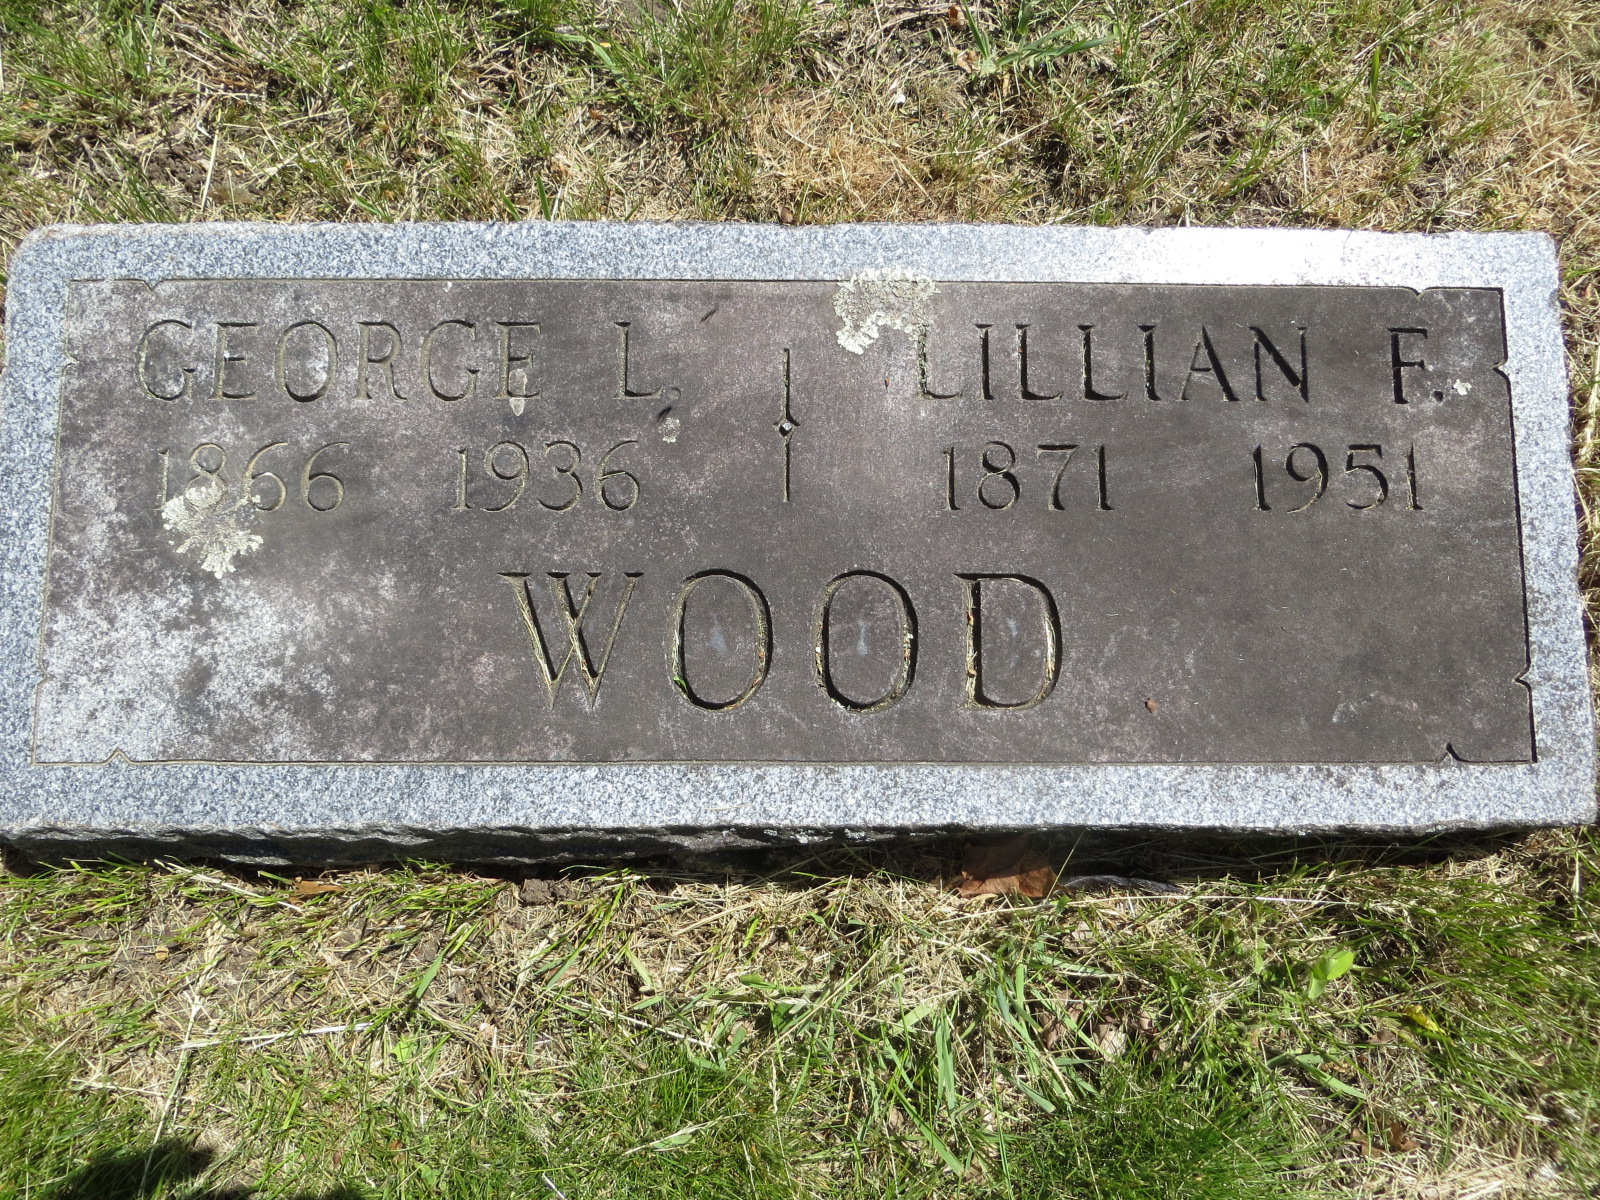 George Lincoln Wood